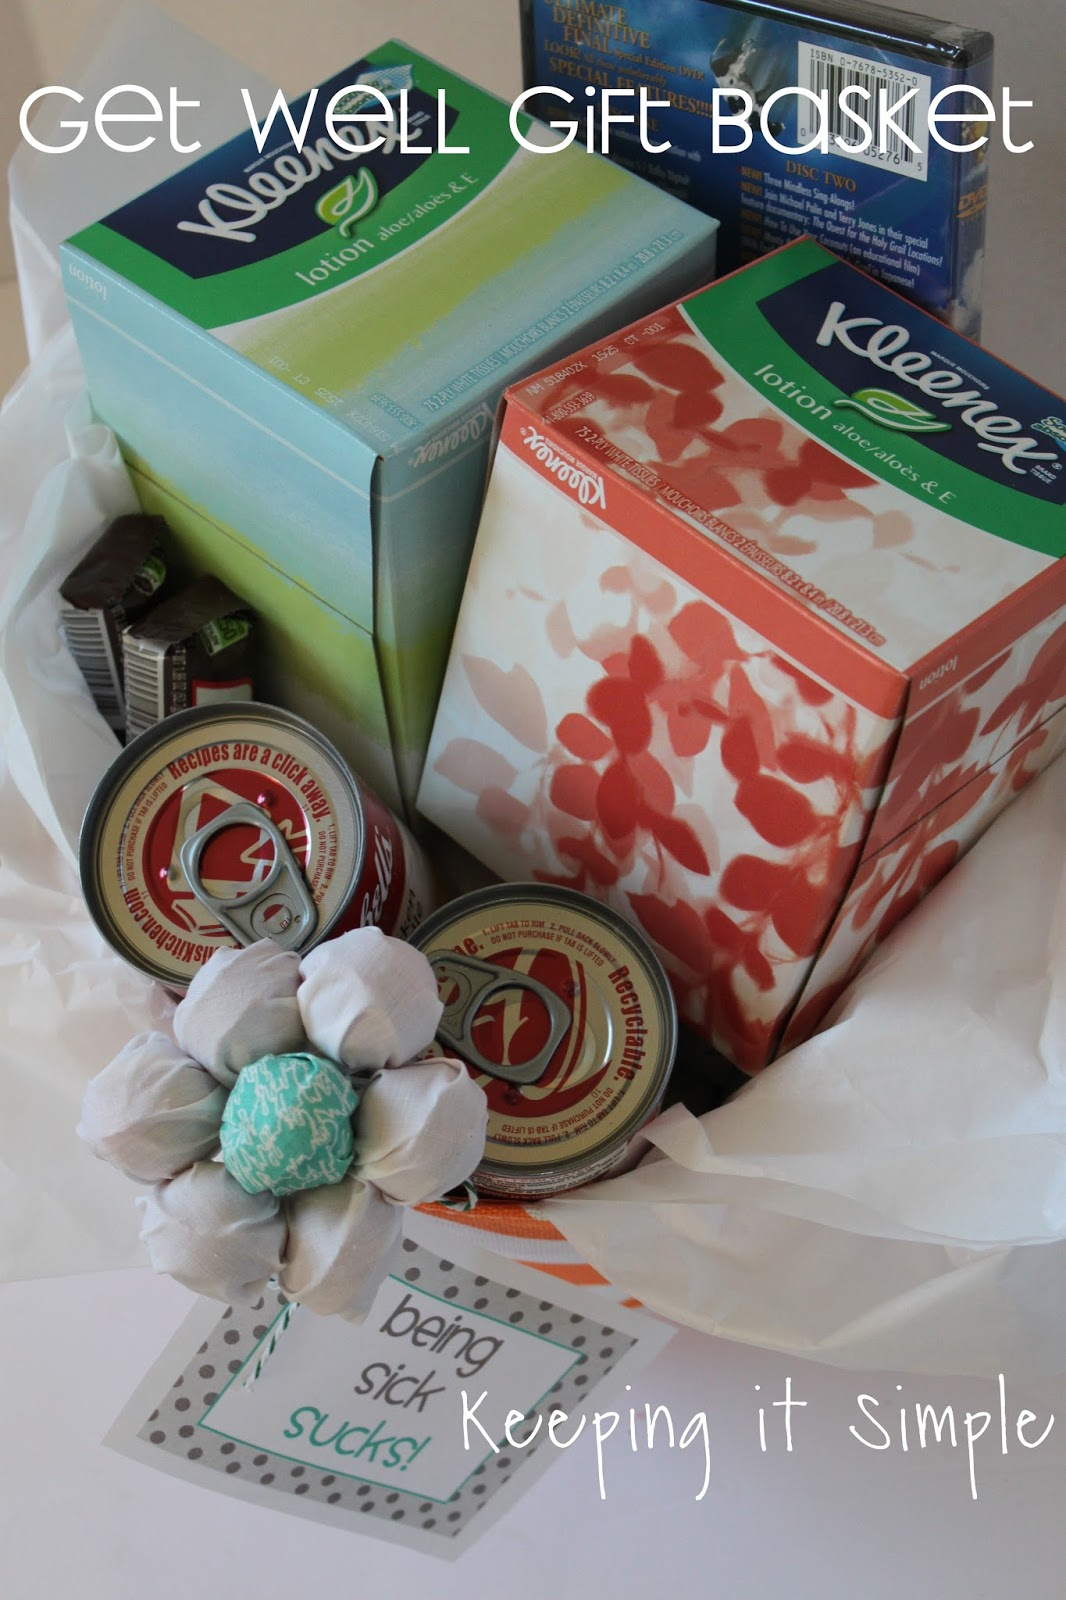 Keeping it simple get well gift basket with kleenex brand